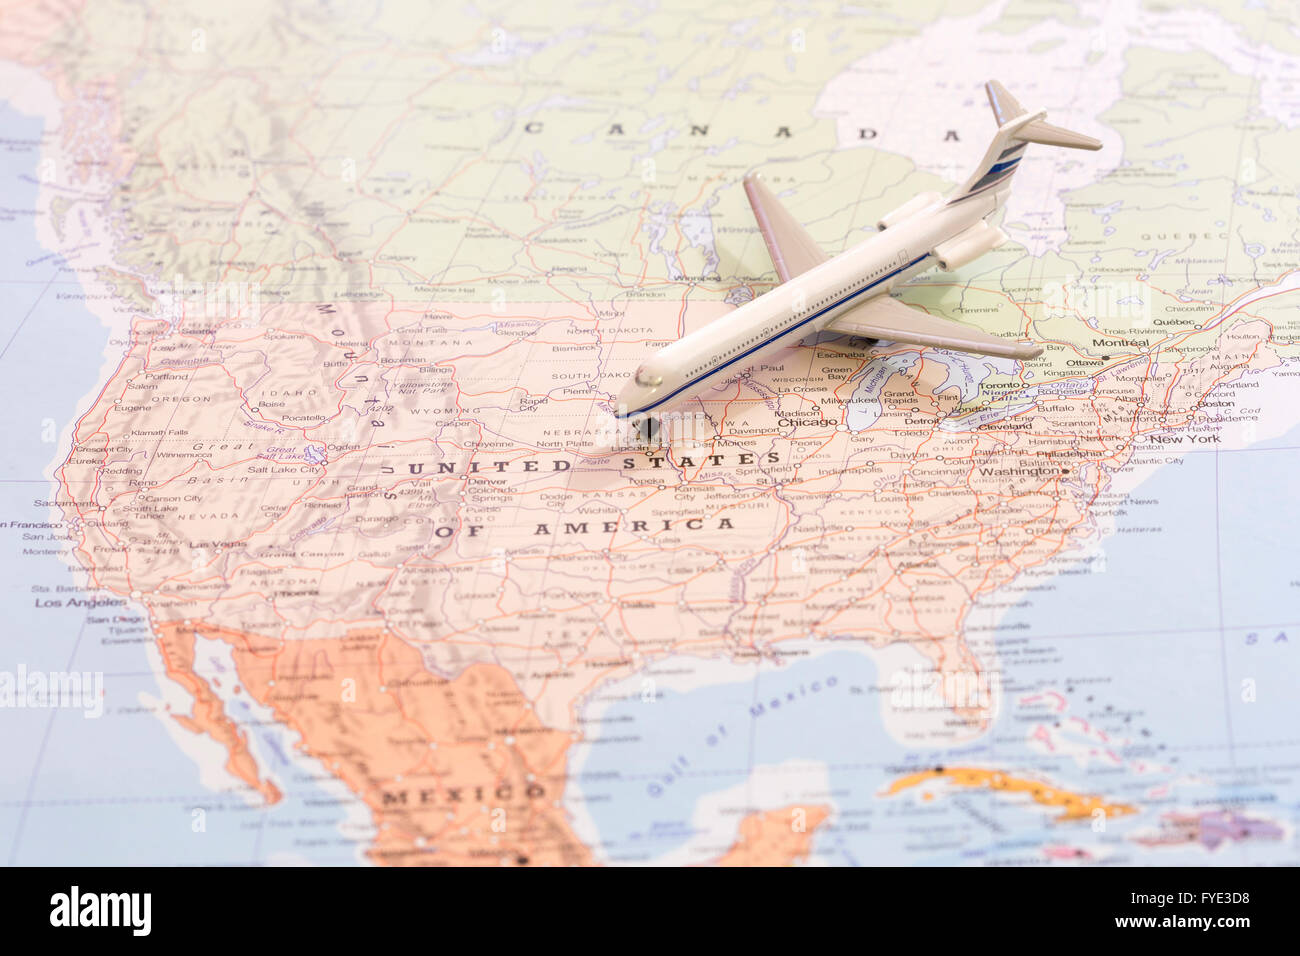 Image of: Miniature Of A Passenger Airplane Flying On The Map Of United States Stock Photo Alamy